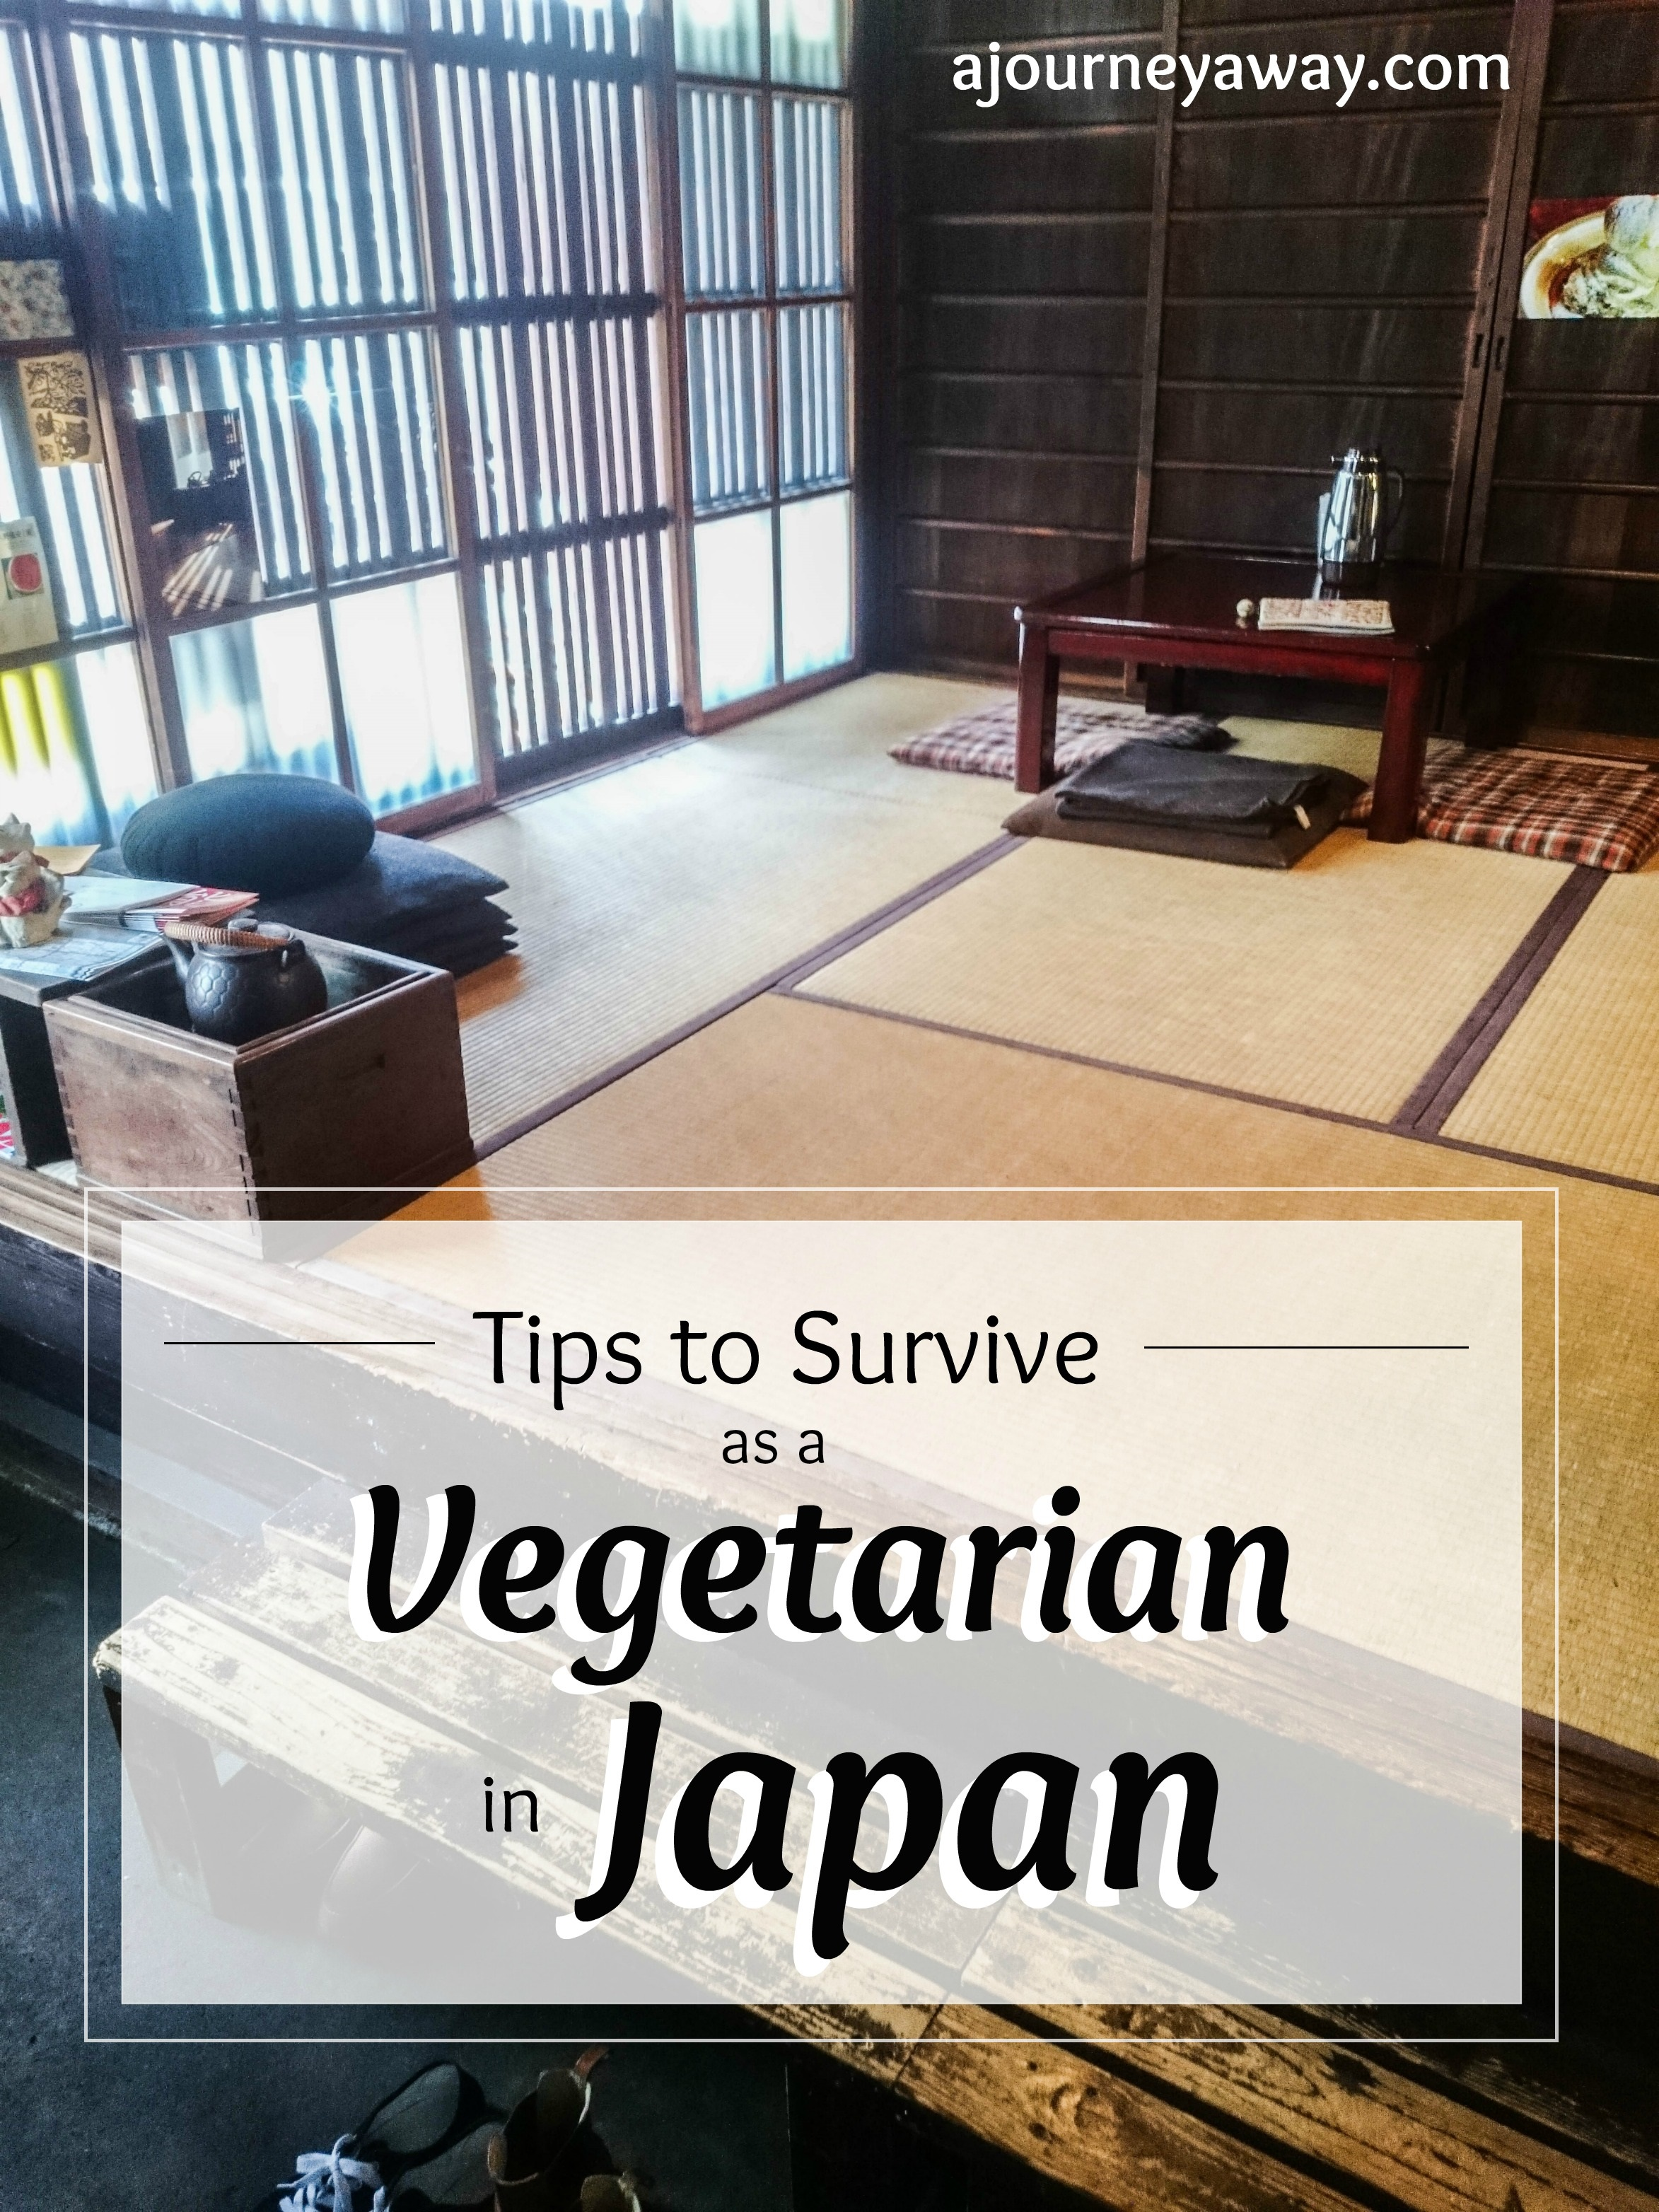 Tips to survive as a vegetarian in Japan | A Journey Away travel blog